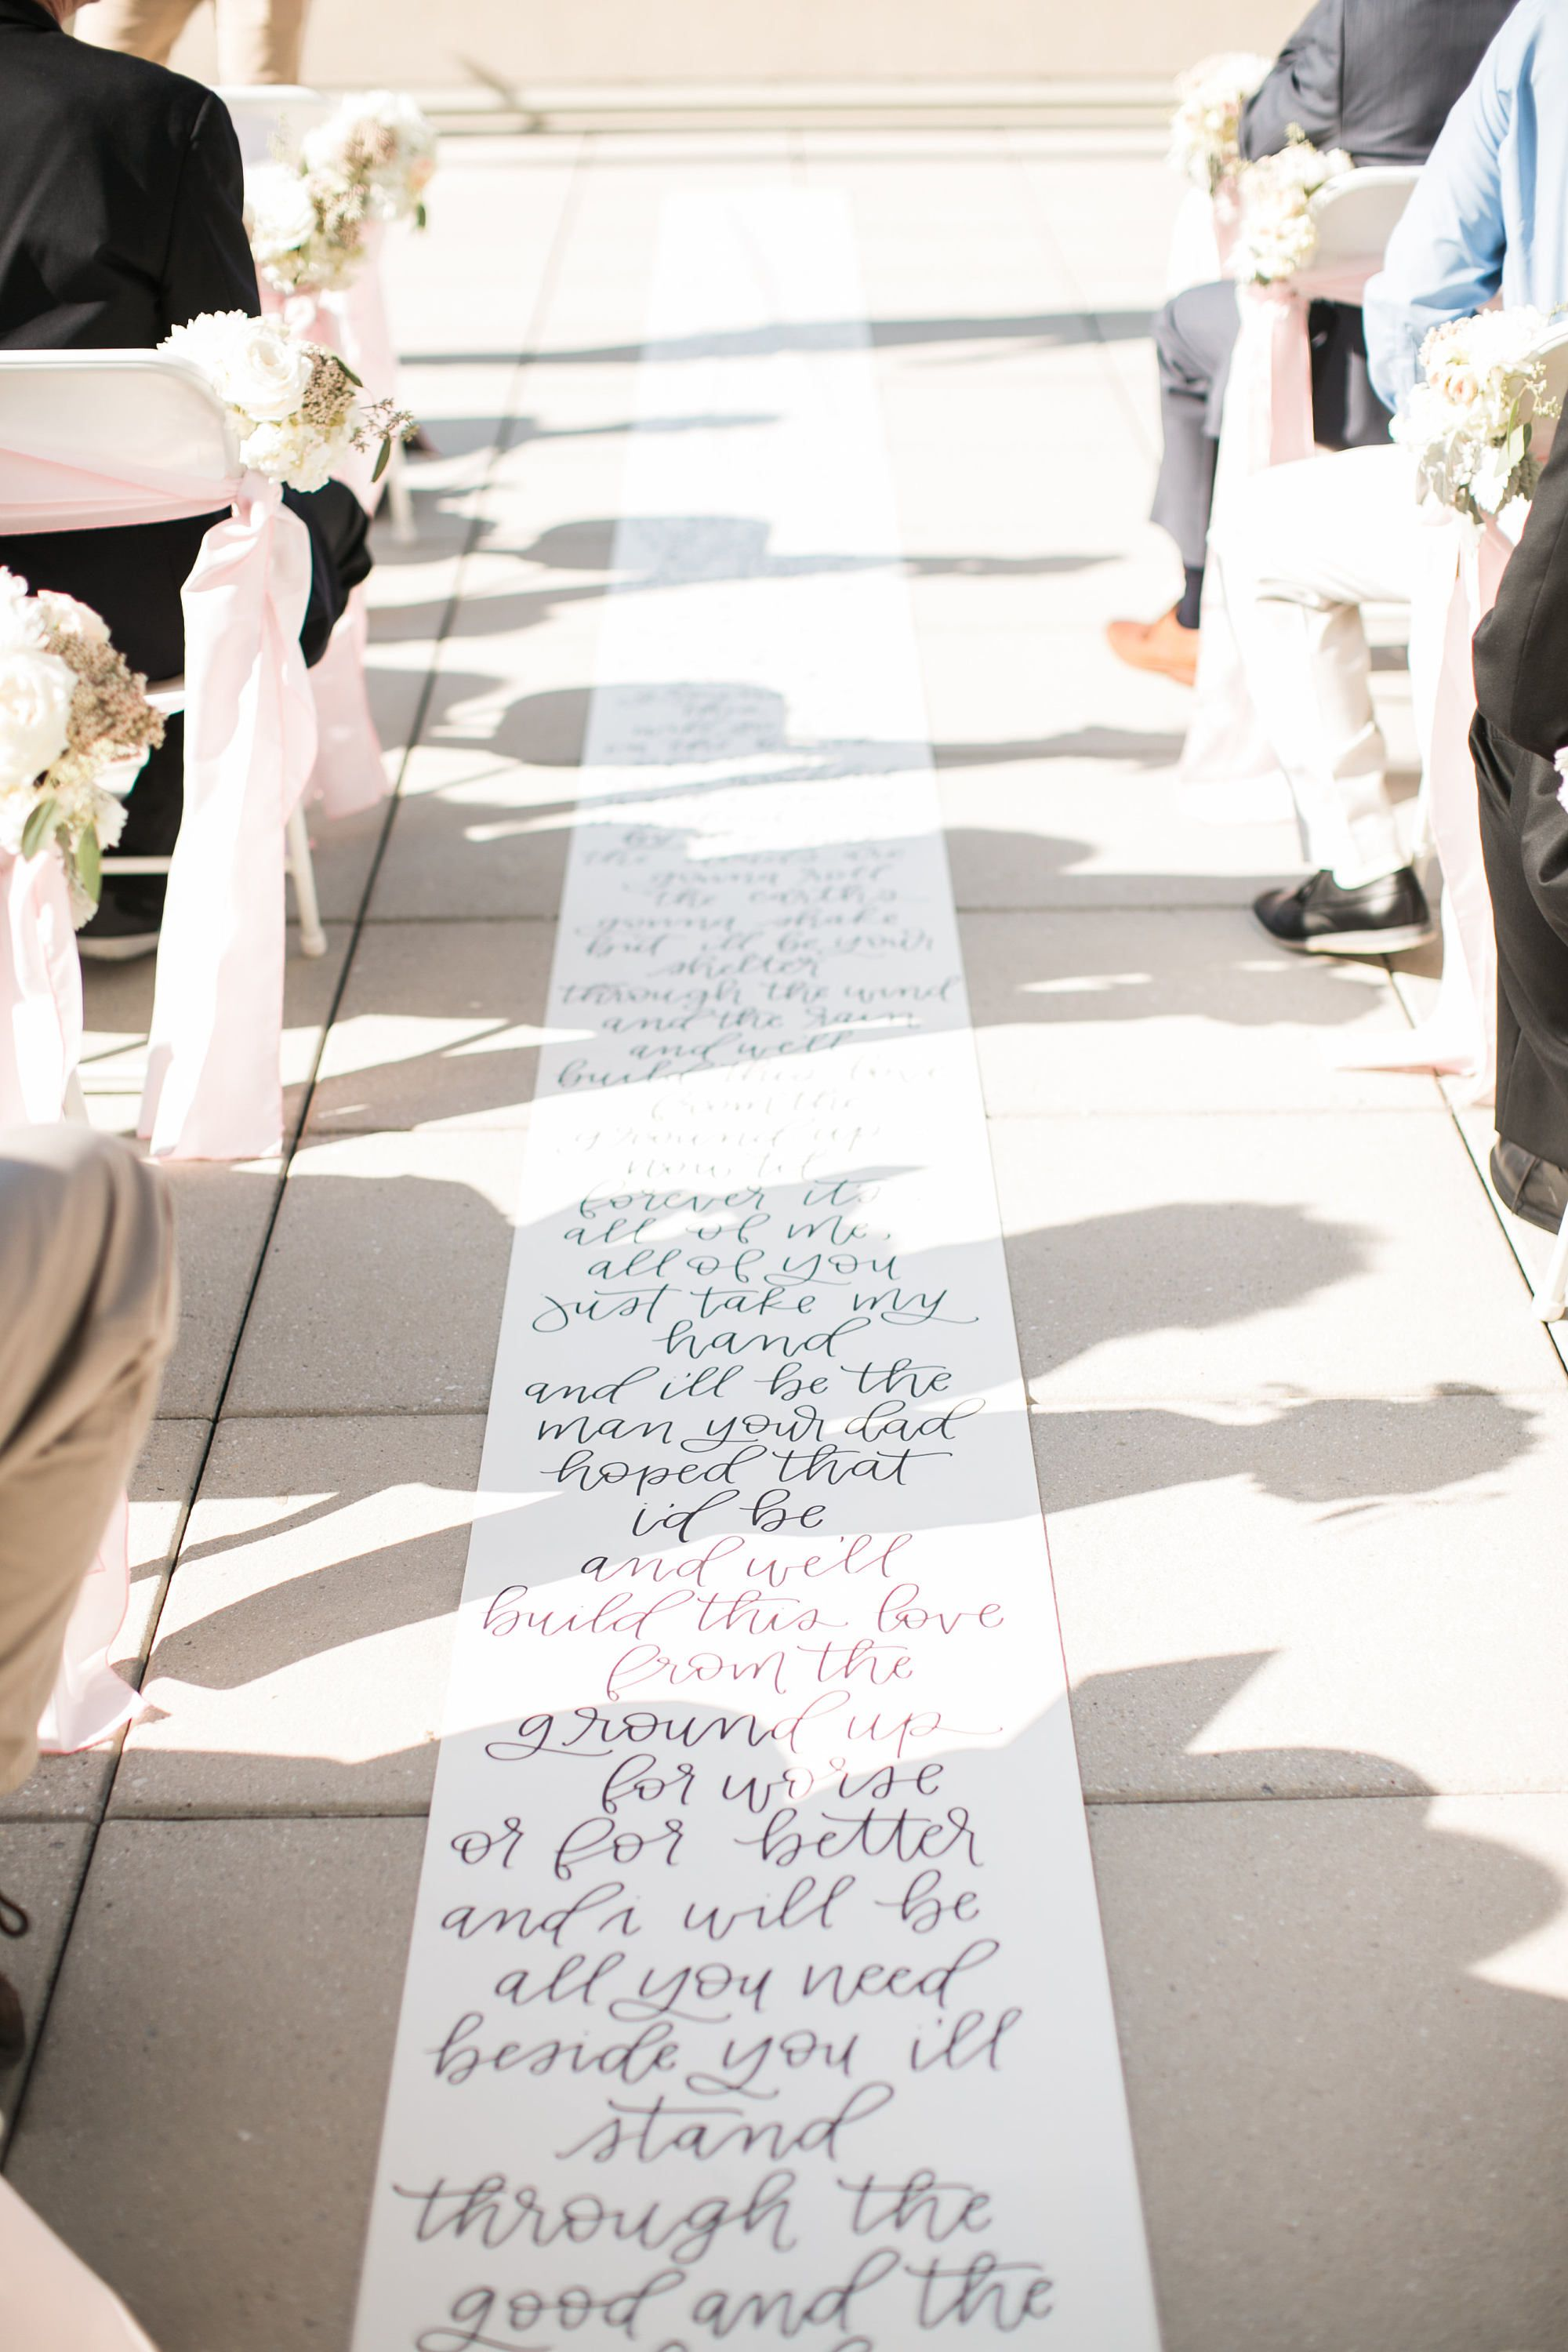 20 Wedding Aisle Runners Ideas To Make Your Wedding More Fabulous Aisle Runner Wedding Church Aisle Decorations Wedding Church Aisle